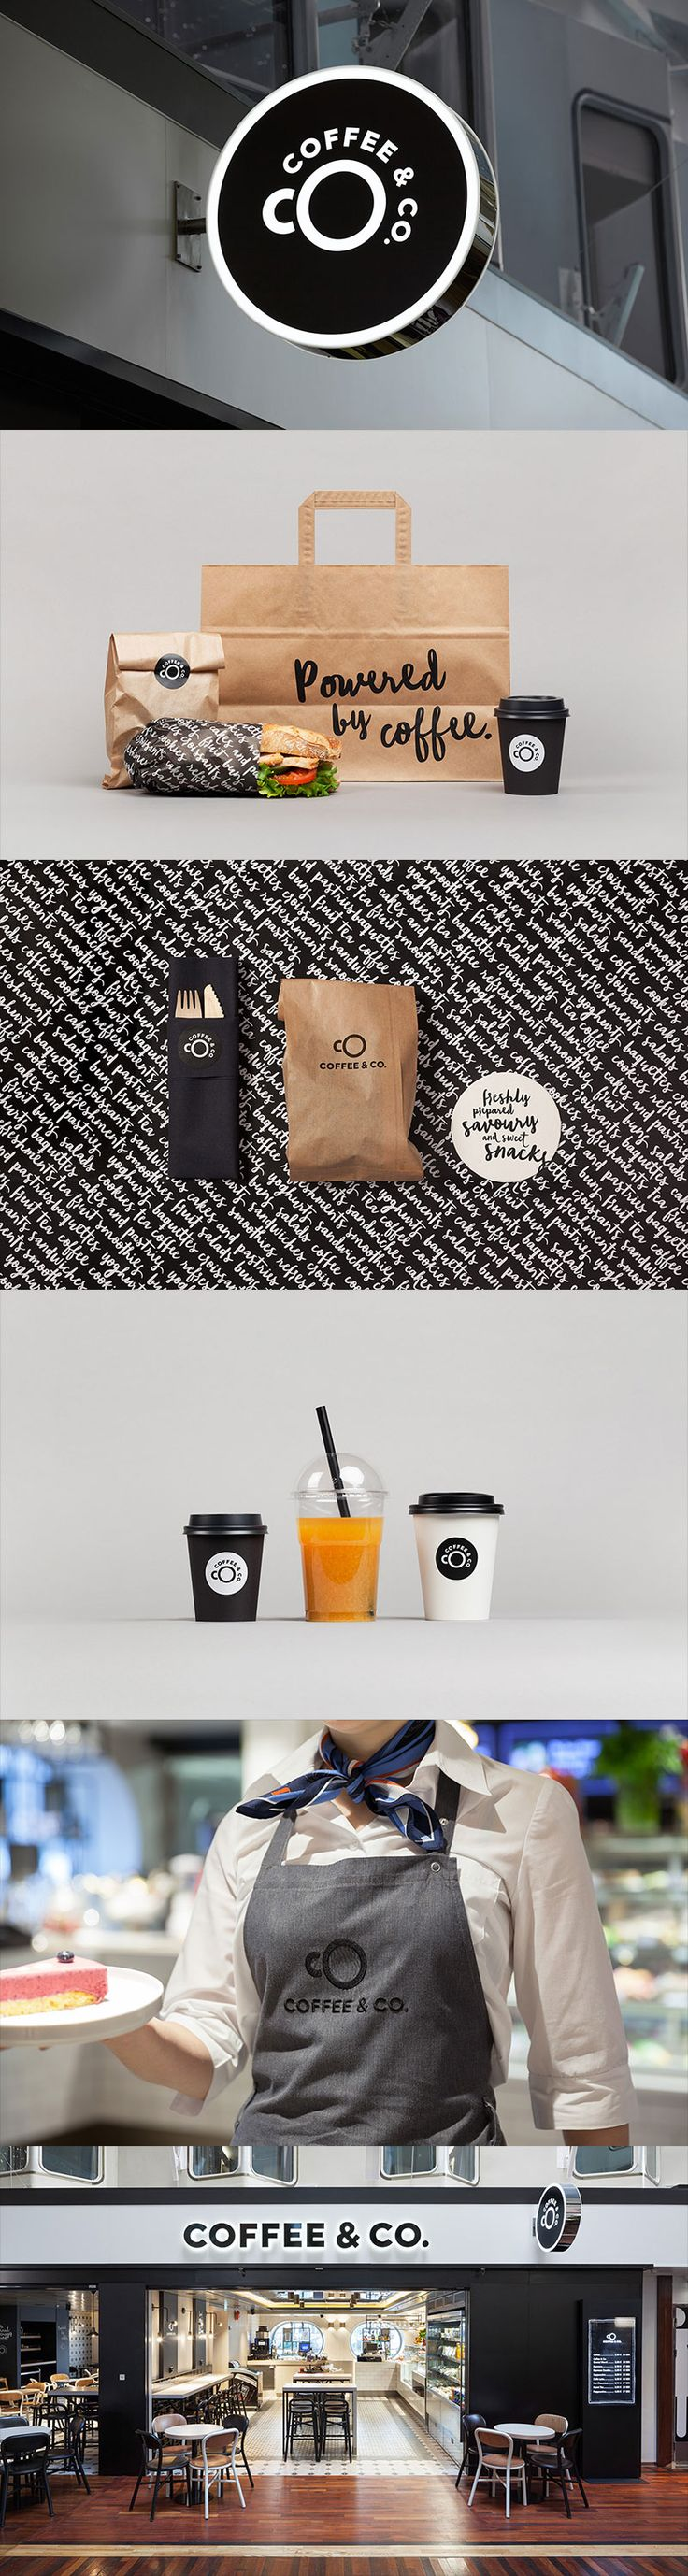 Coffee & Co. by BOND Creative Agency